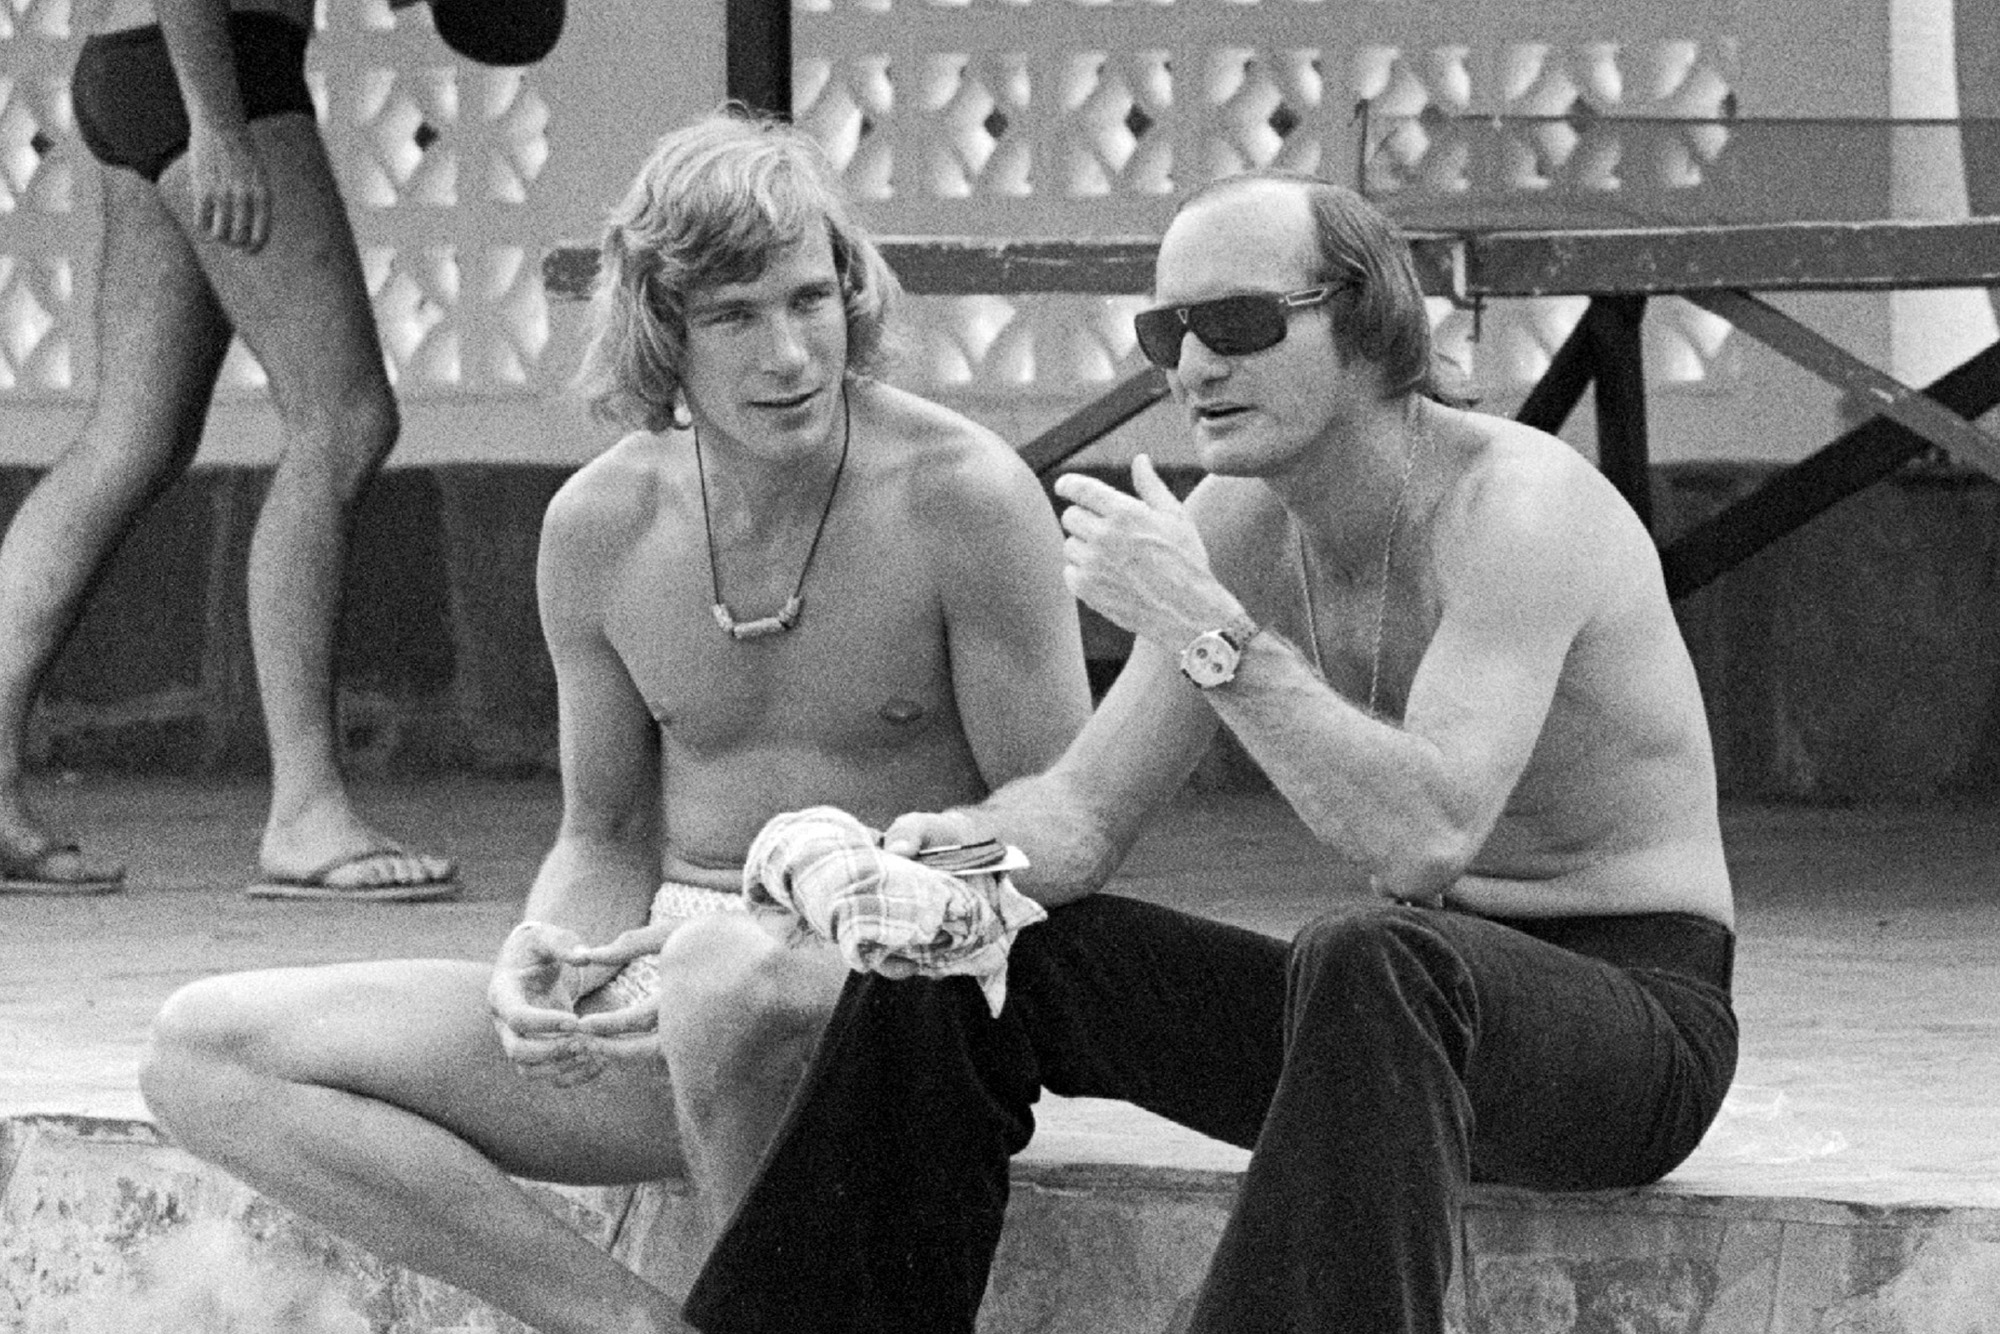 Mike Hailwood and James Hunt at the Kylami Ranch Hotel during the 1974 South African Grand Prix weekend